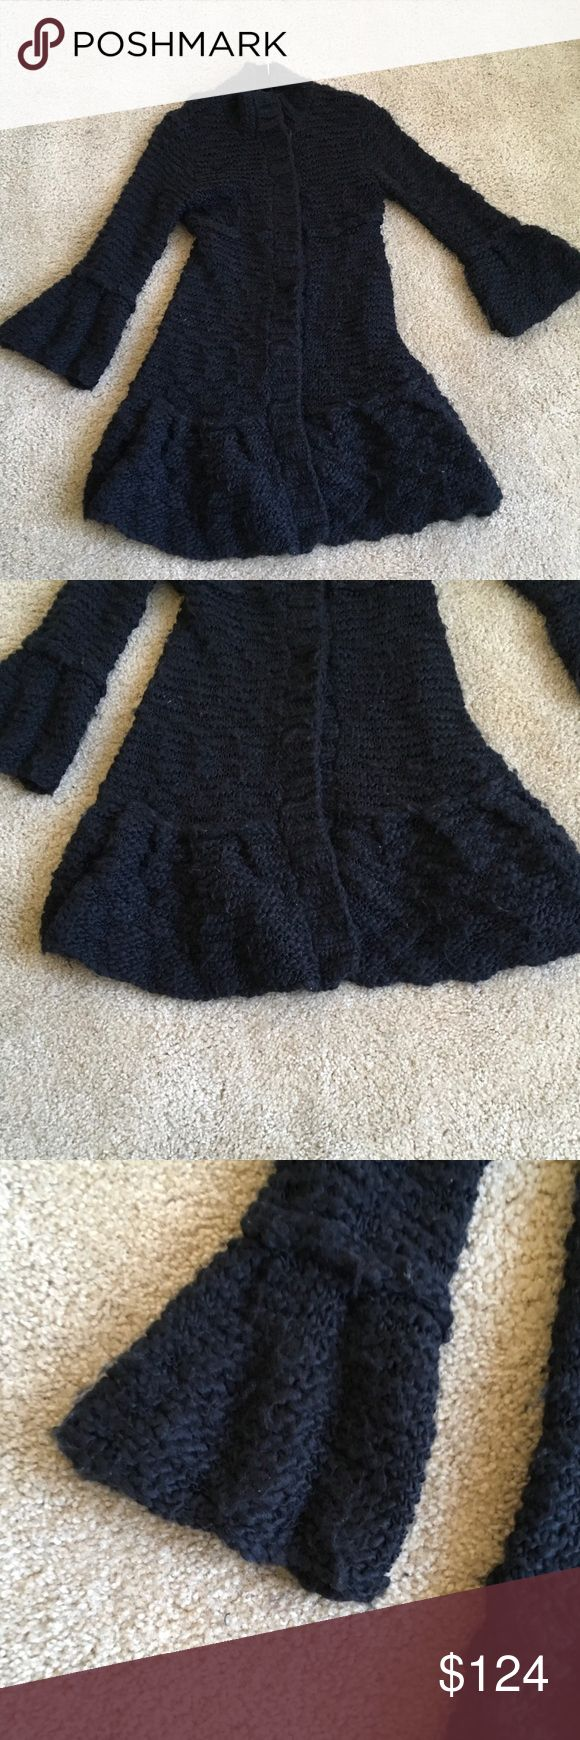 """FREE PEOPLE LONG BLACK Sweater Coat Jacket COMFY S FRE PEOPLE BLACK knitted wool fabulous long sweater jacket coat. Huge snaps 4 closure. bell sleeves & knitted ruffle bottom make this the PERFECT GO TO JACKET ANYTIME. SMALL 16"""" across chest 36"""" long.FREE PROPLE WOOL sheds some.... Free People Sweaters"""